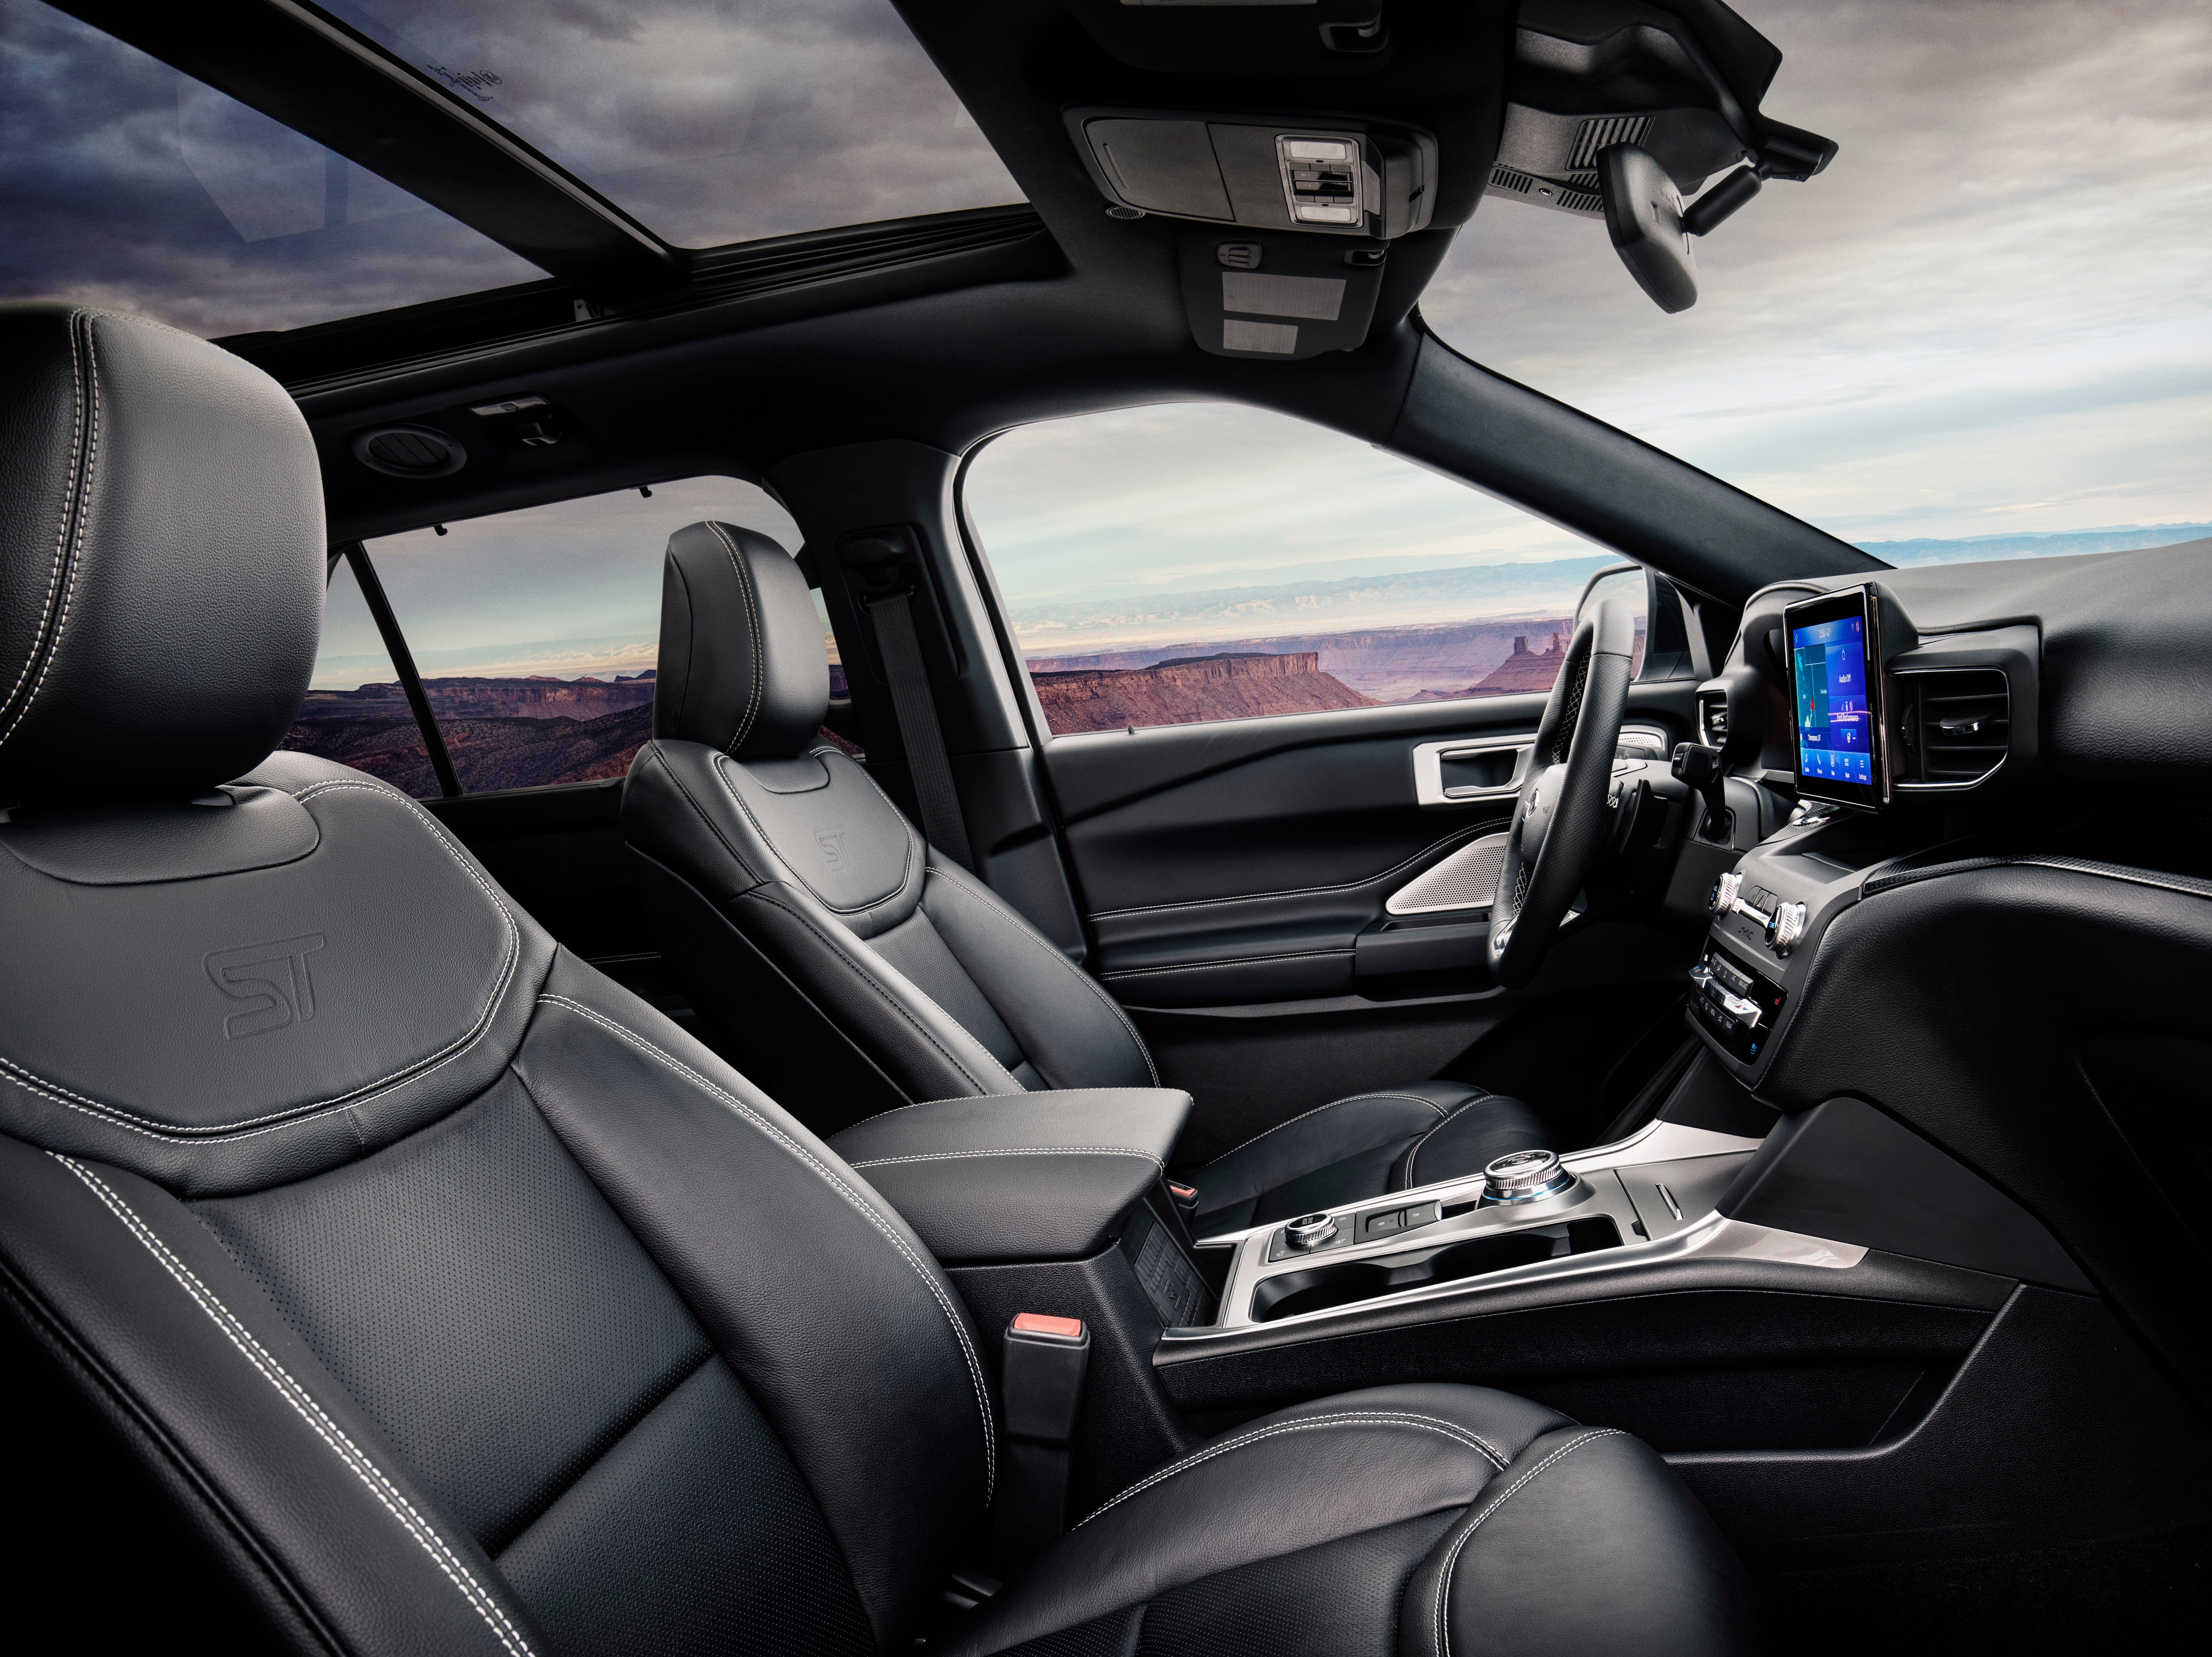 """""""Inside the 2020 Ford Explorer ST, a 12.3-inch all-digital instrument cluster is standard. A flat-bottomed, heated steering wheel embossed with an ST logo and unique floor mats are subtle cues exclusive to Explorer ST. Leather sport bucket seats with micro-perforation, City Silver accent stitching and ST logo complete the sporty feel."""""""